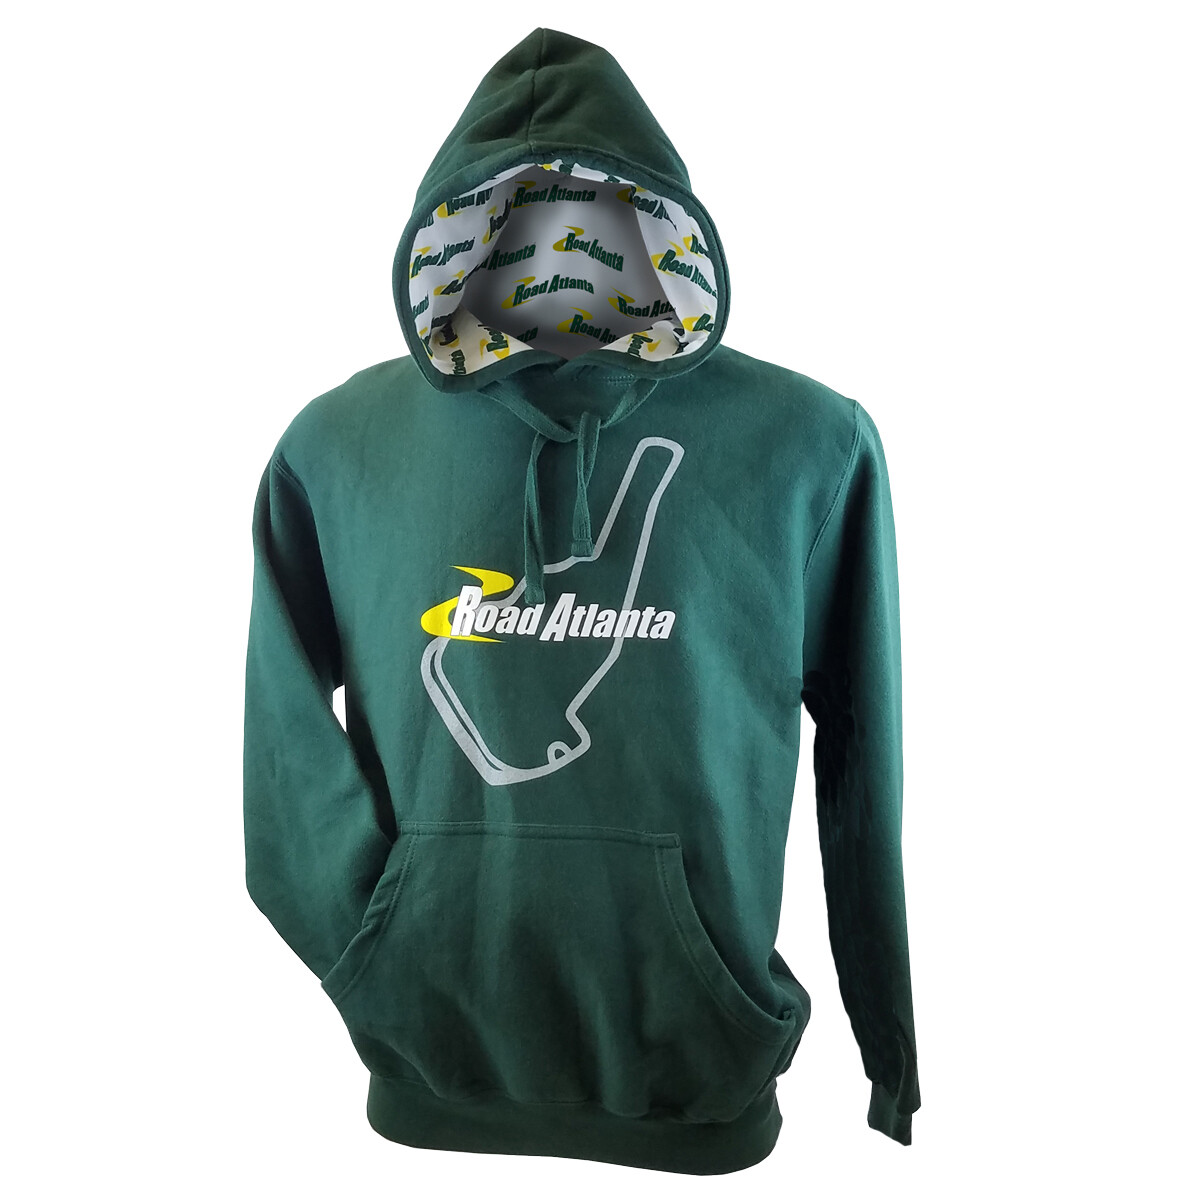 Road Atlanta Hooded Sweatshirt - Forest Green